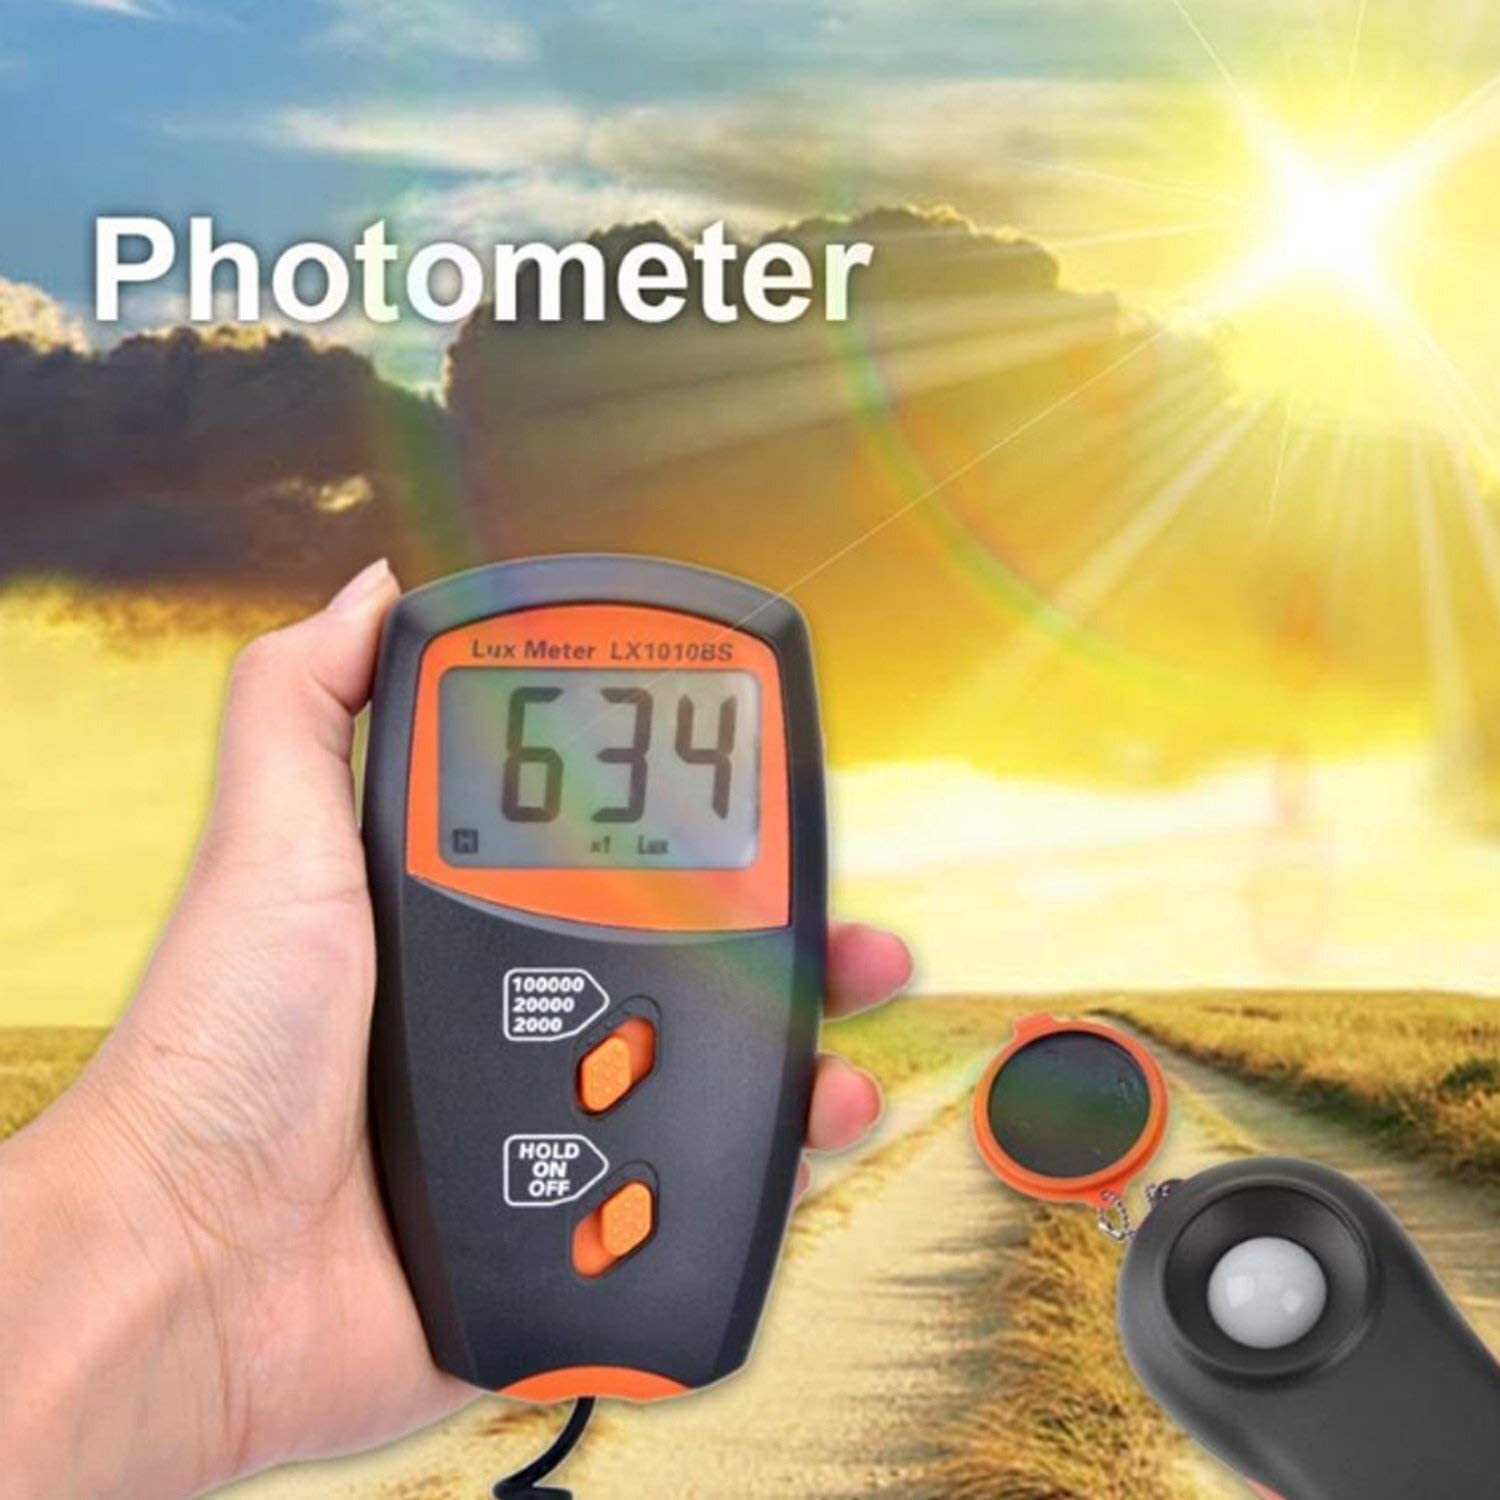 Sensor Instrument Light Meter Handheld Digital Lux Meter LX1010BS Light Measurement Range:1~100,000 Electronic Testing Equipment